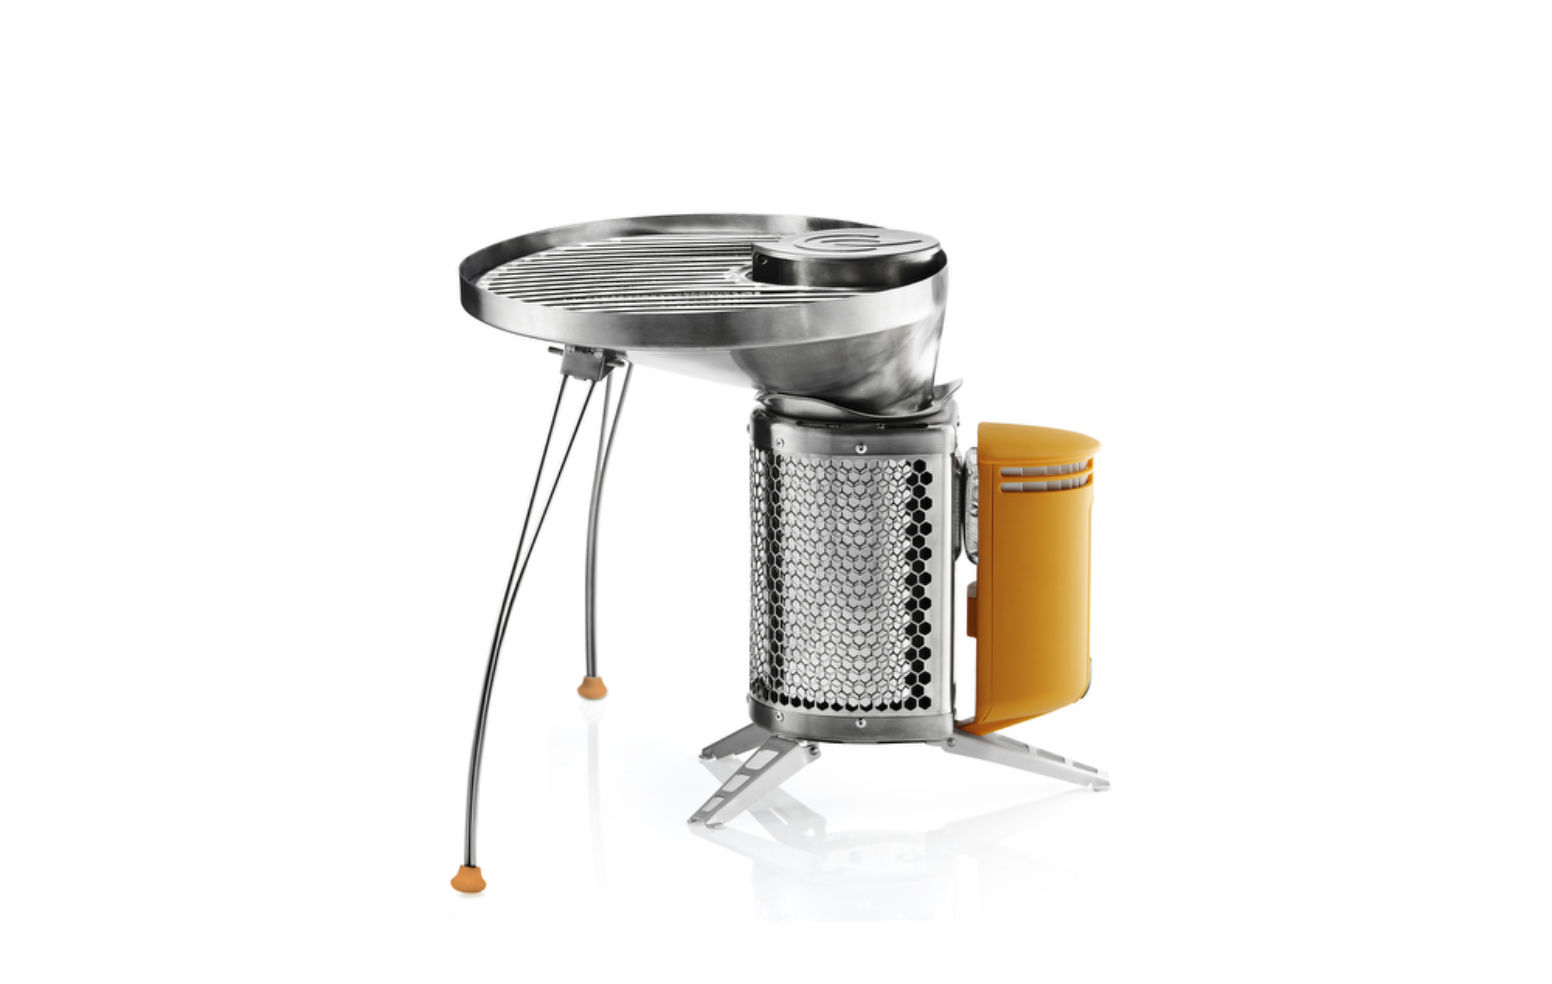 BioLite Campstove grill and Wood Burning CampStove